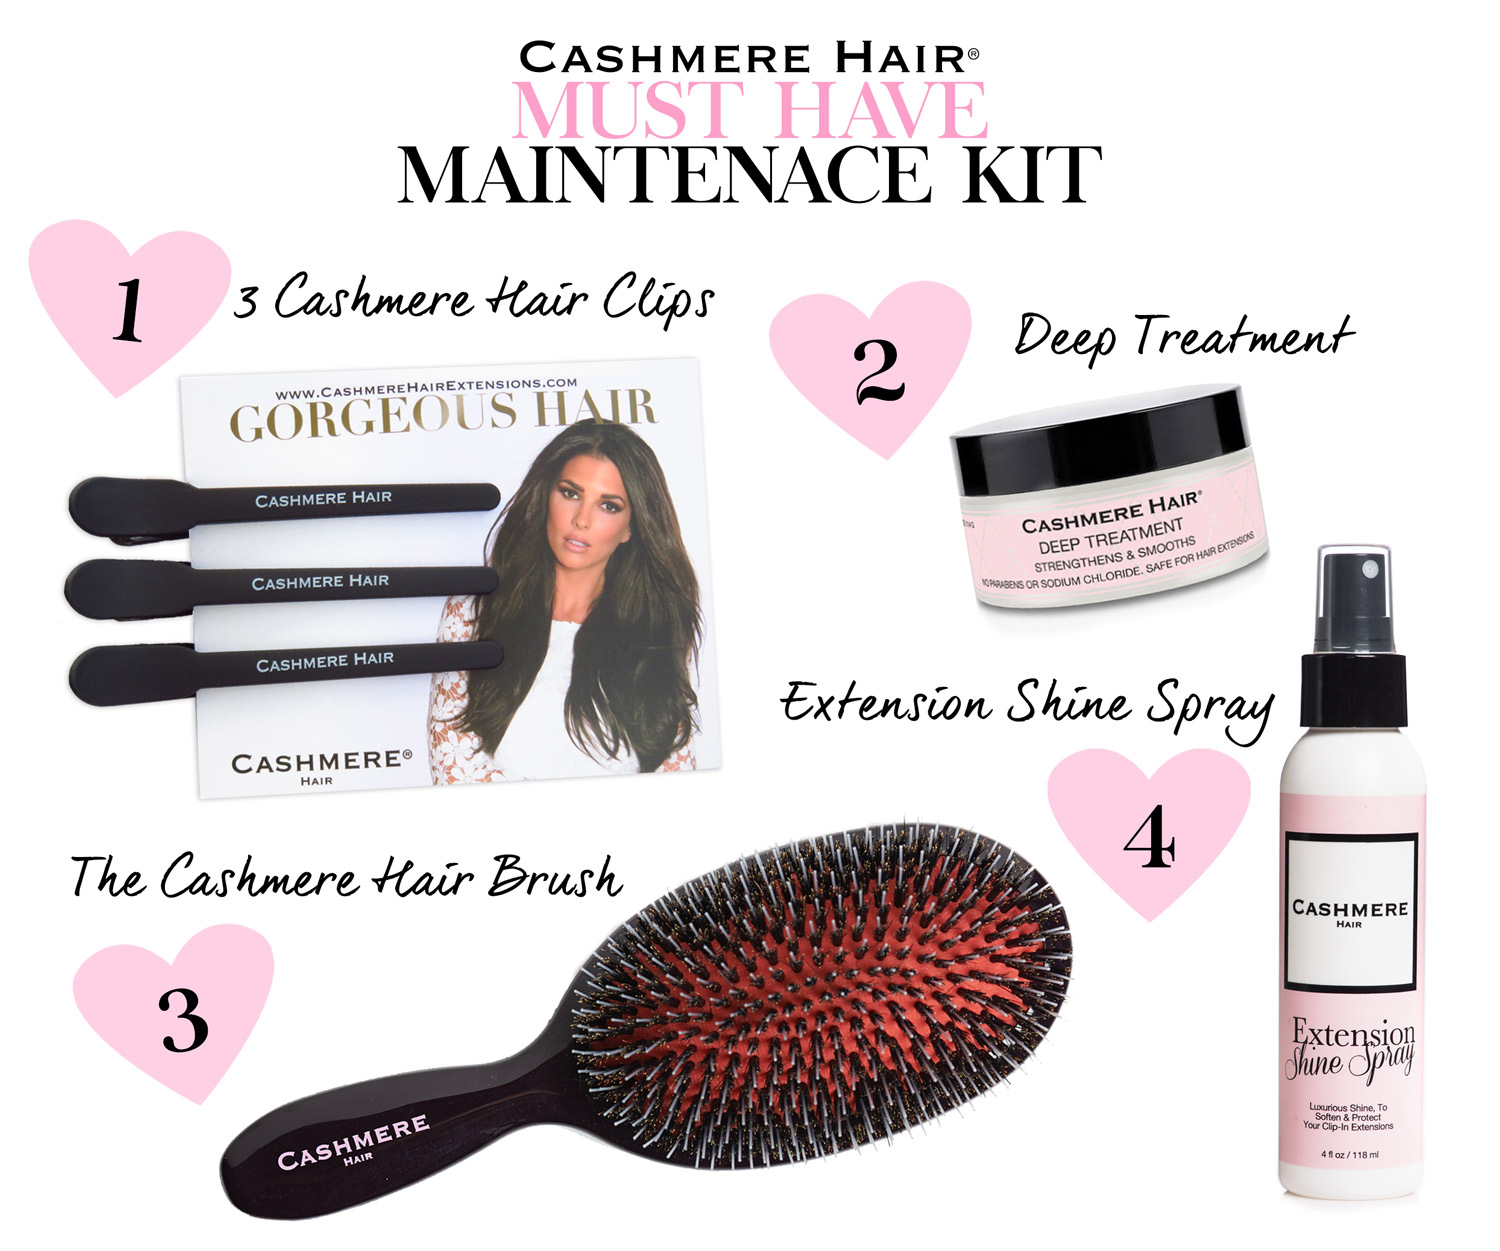 NEW CASHMERE HAIR MAINTENANCE KIT!